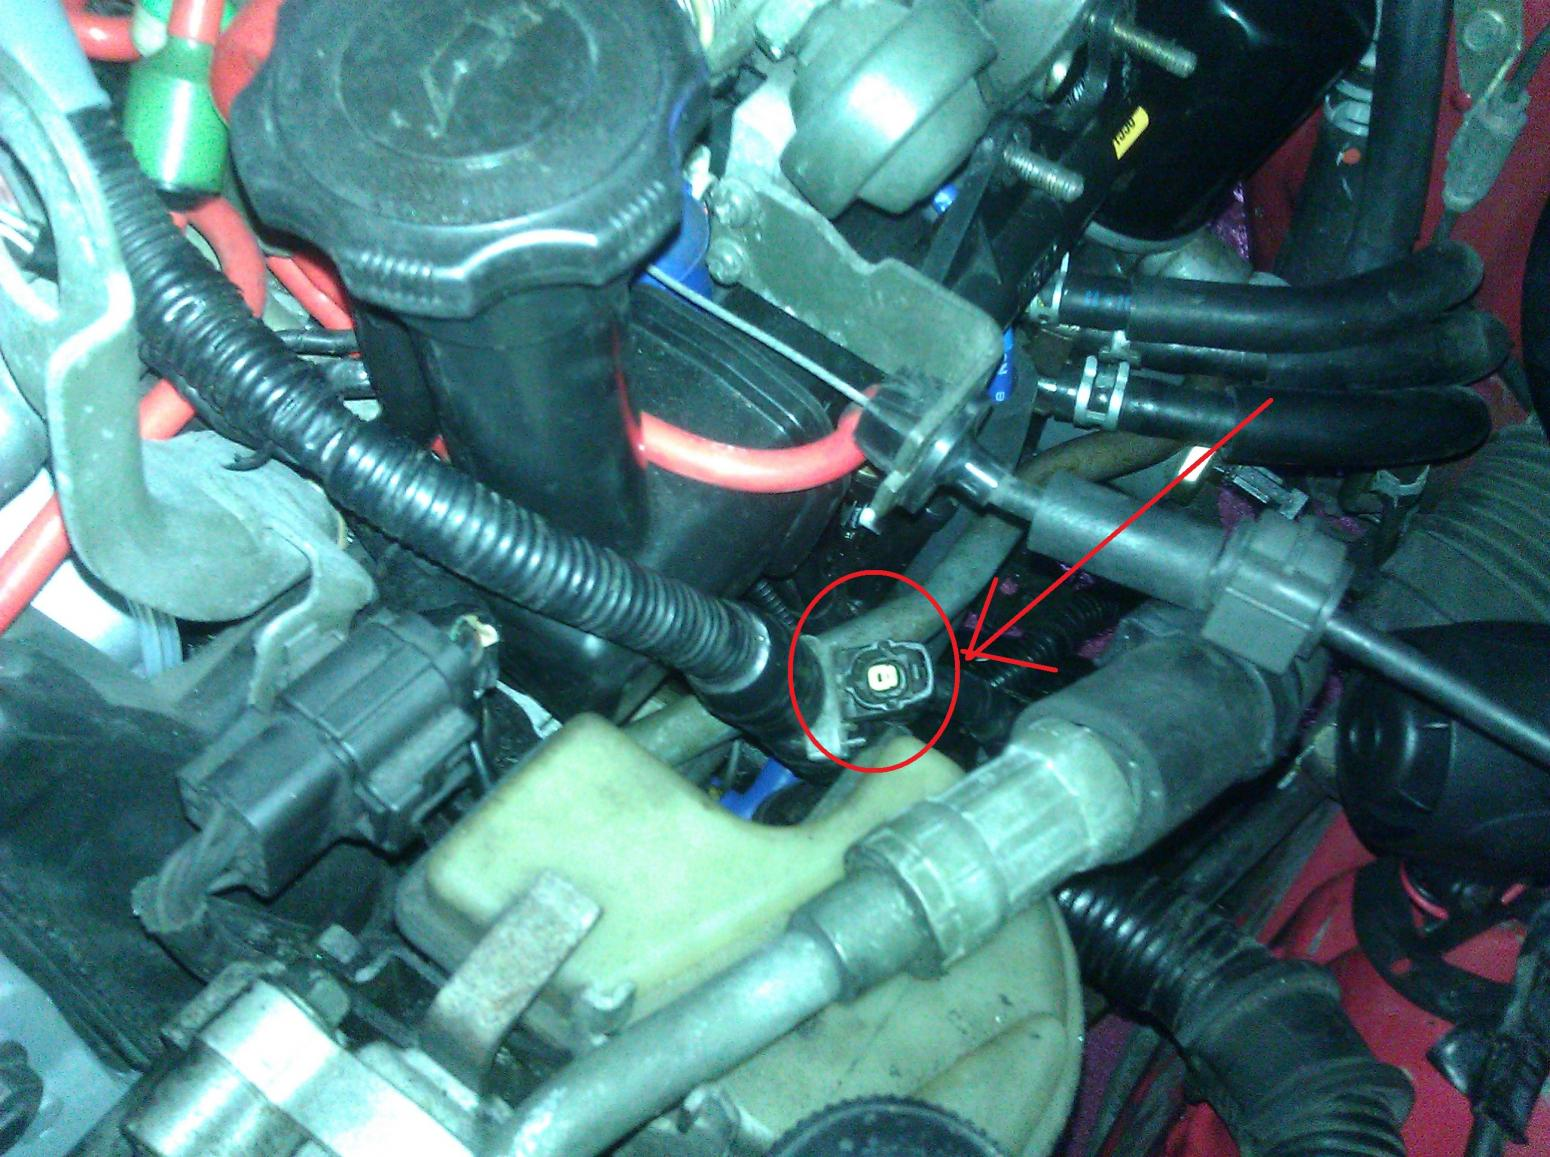 hight resolution of fd coolant level sensor wiring question img 20120205 115727 jpg